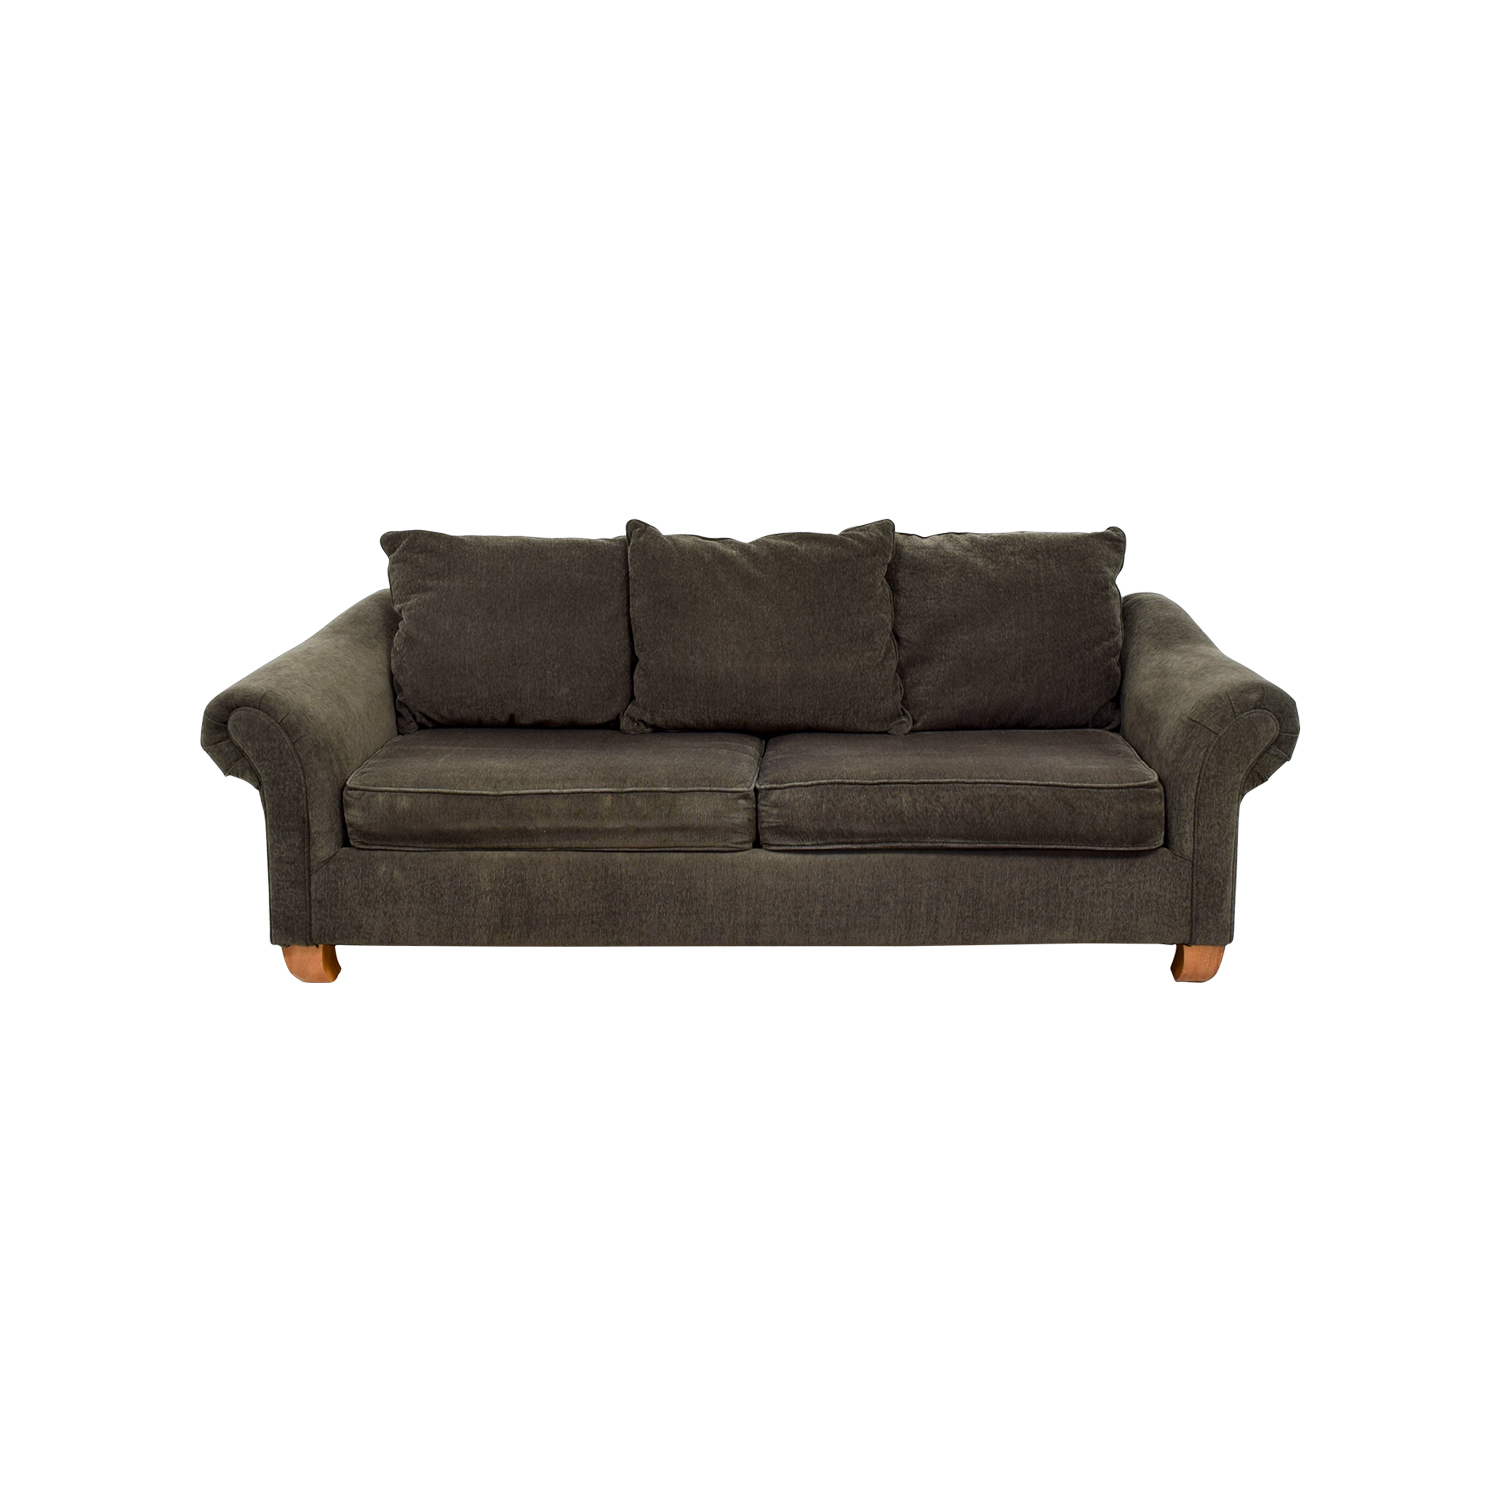 Star Furniture Brown Curved Arm Sofa sale